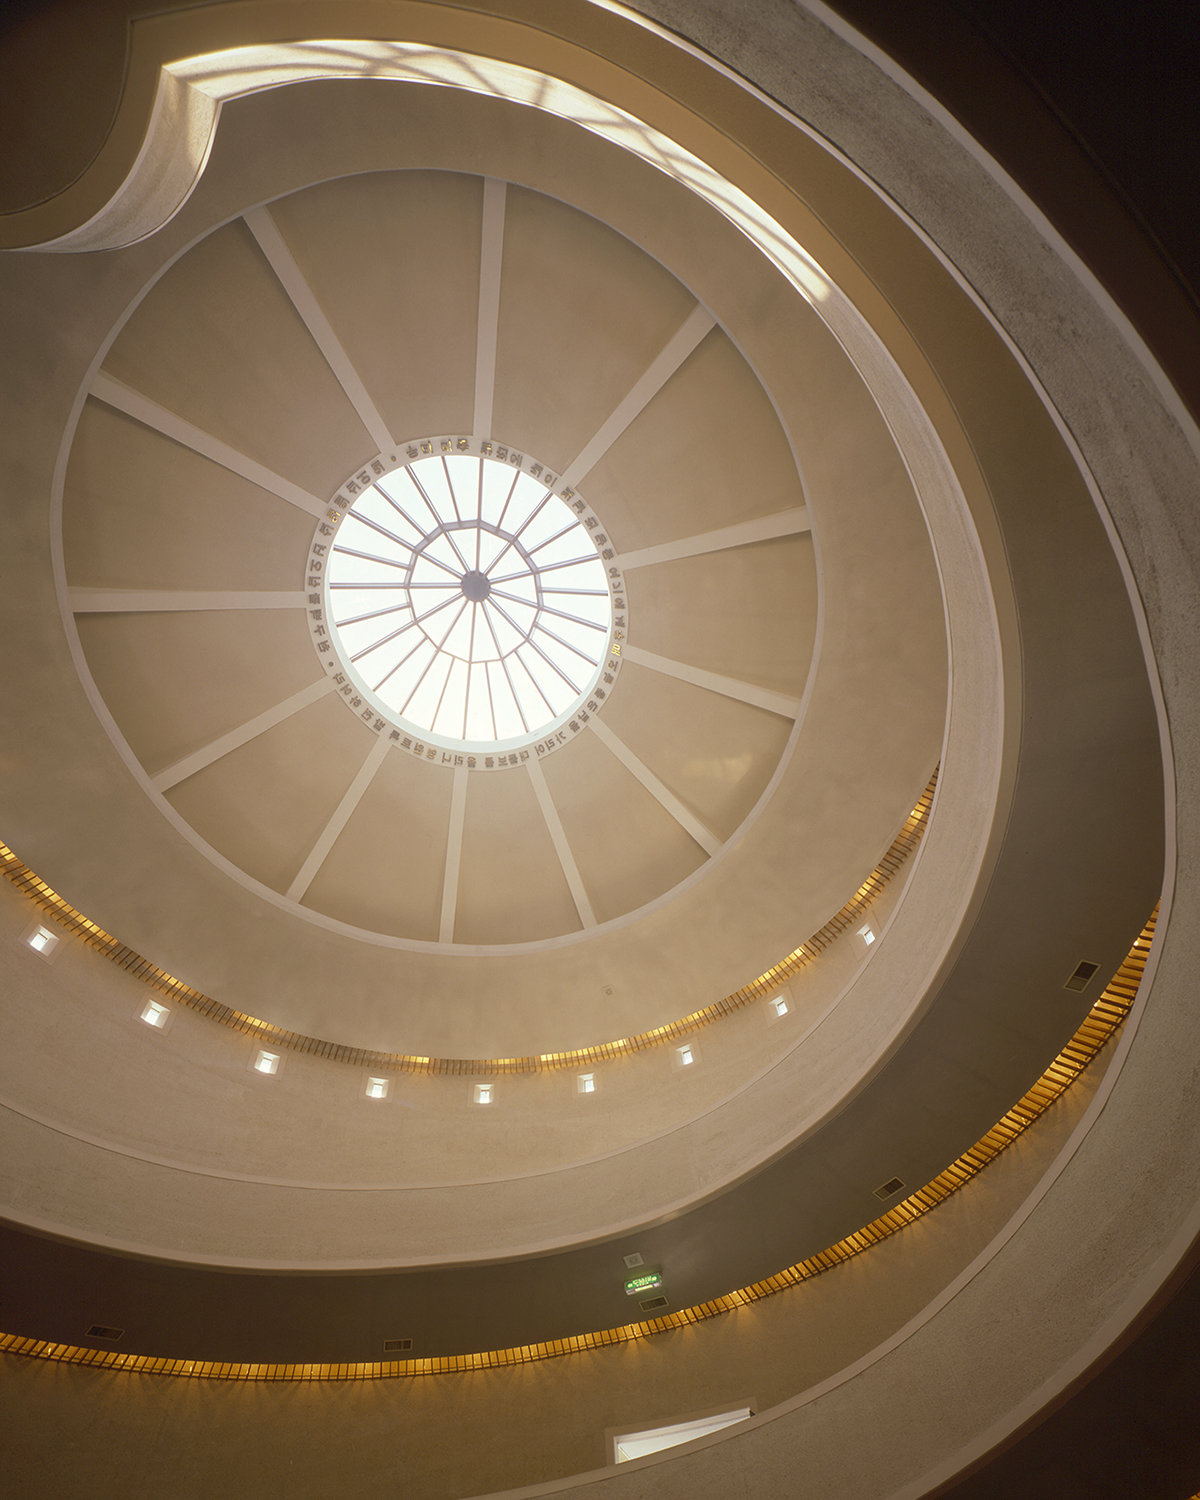 6 tskp korean ministry of culture national museum of contemporary art interior detail rotunda lighting and skylight 1400 xxx q85